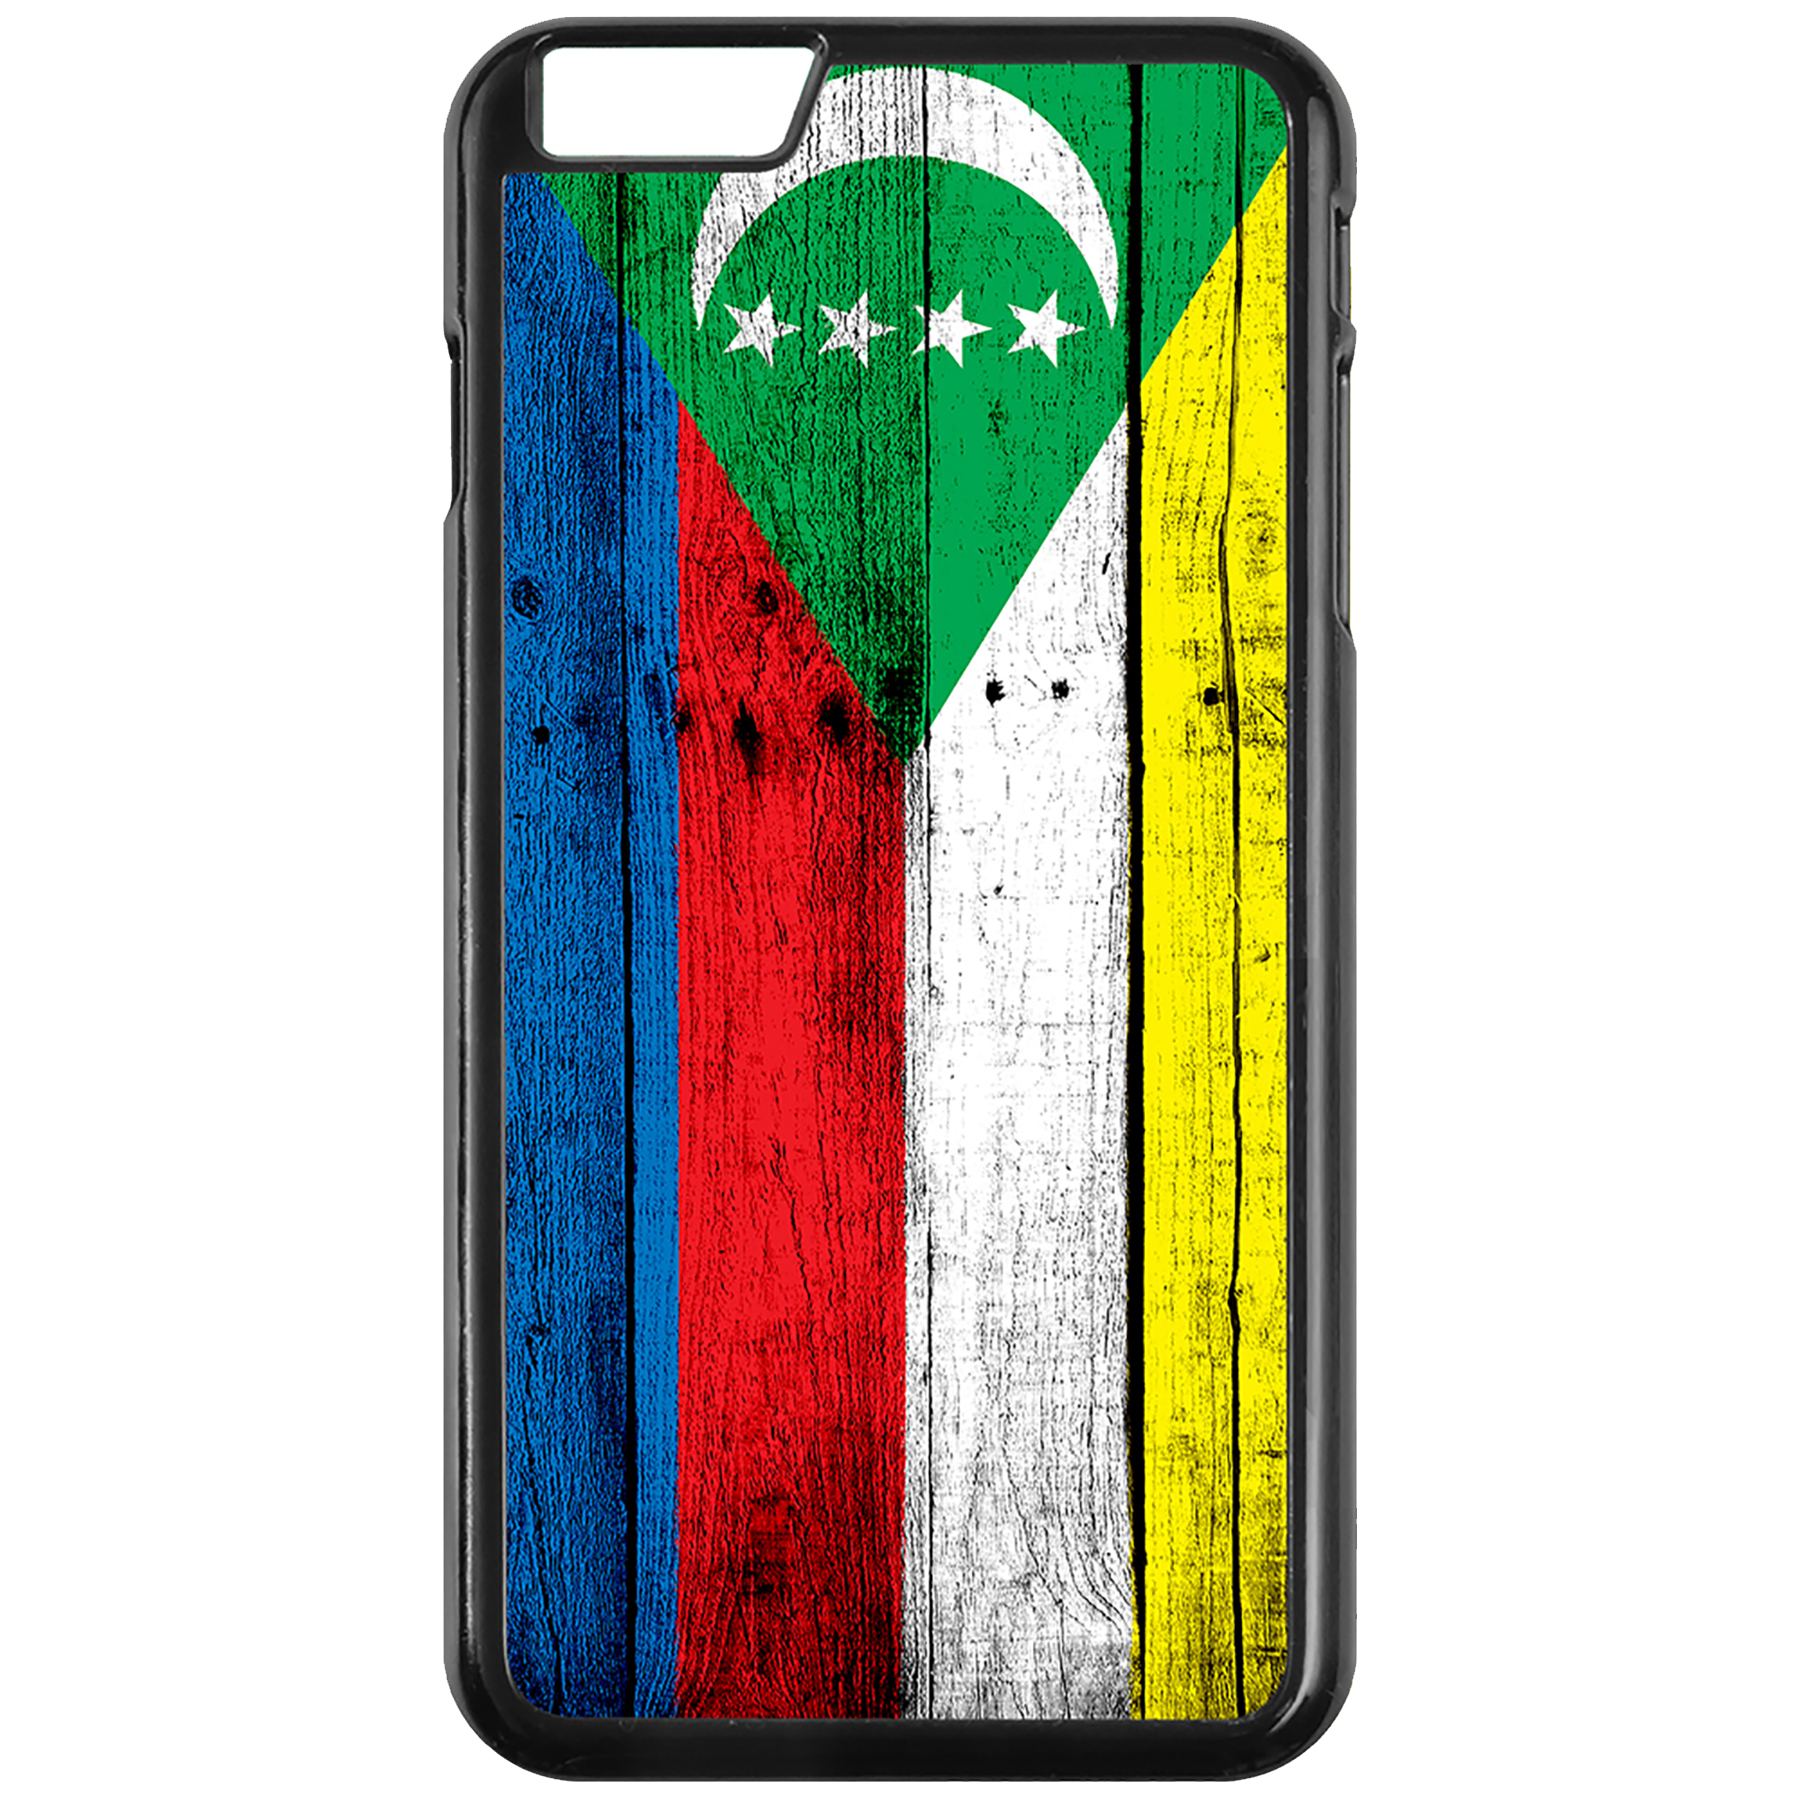 Apple-iPhone-Case-with-Flag-of-Comoros-Comorian-Many-Design-Options thumbnail 11